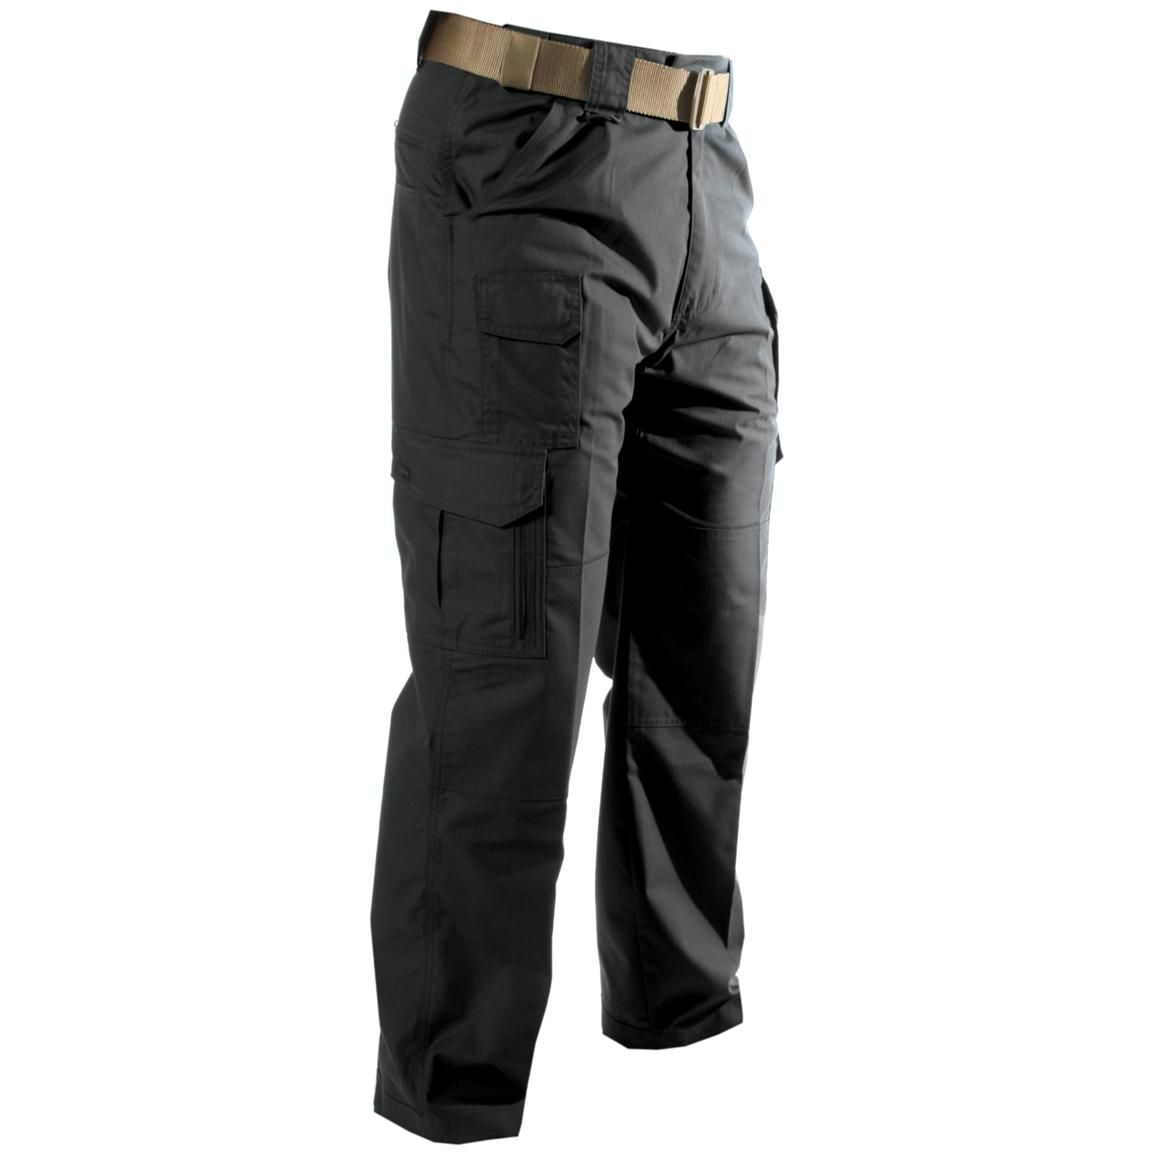 Mens blackhawk warrior wear lightweight tactical pants black 45 mens blackhawk warrior wear lightweight tactical pants black 45 publicscrutiny